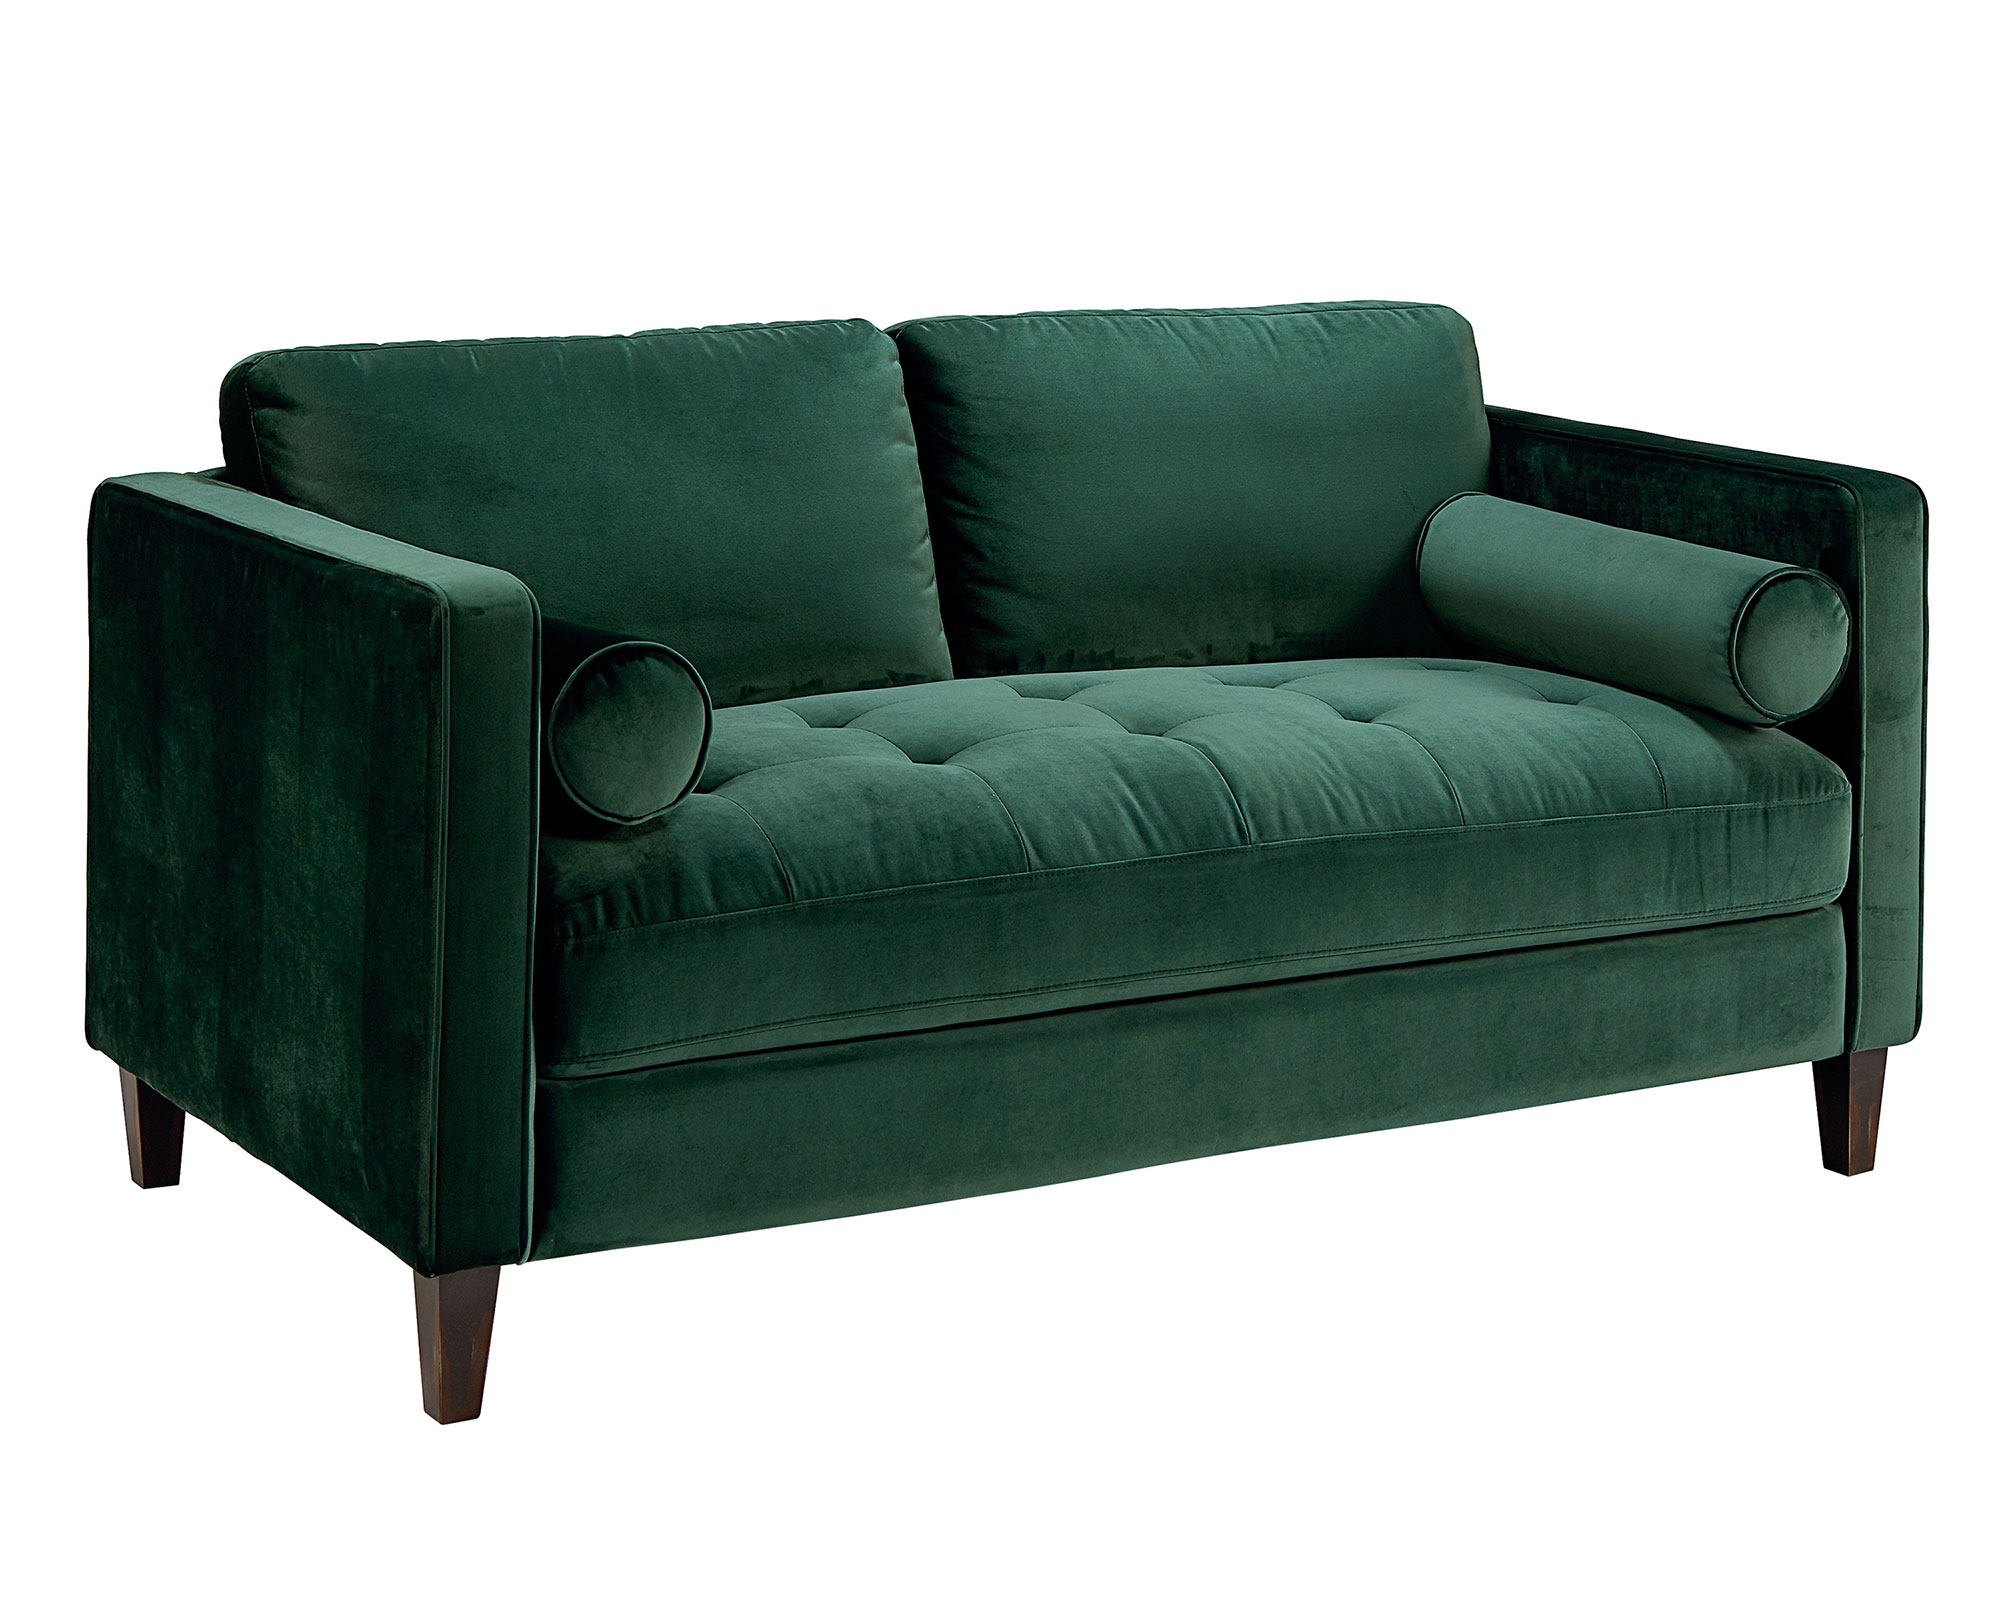 greenfront furniture sofas wooden sofa under 10000 magnolia home green front